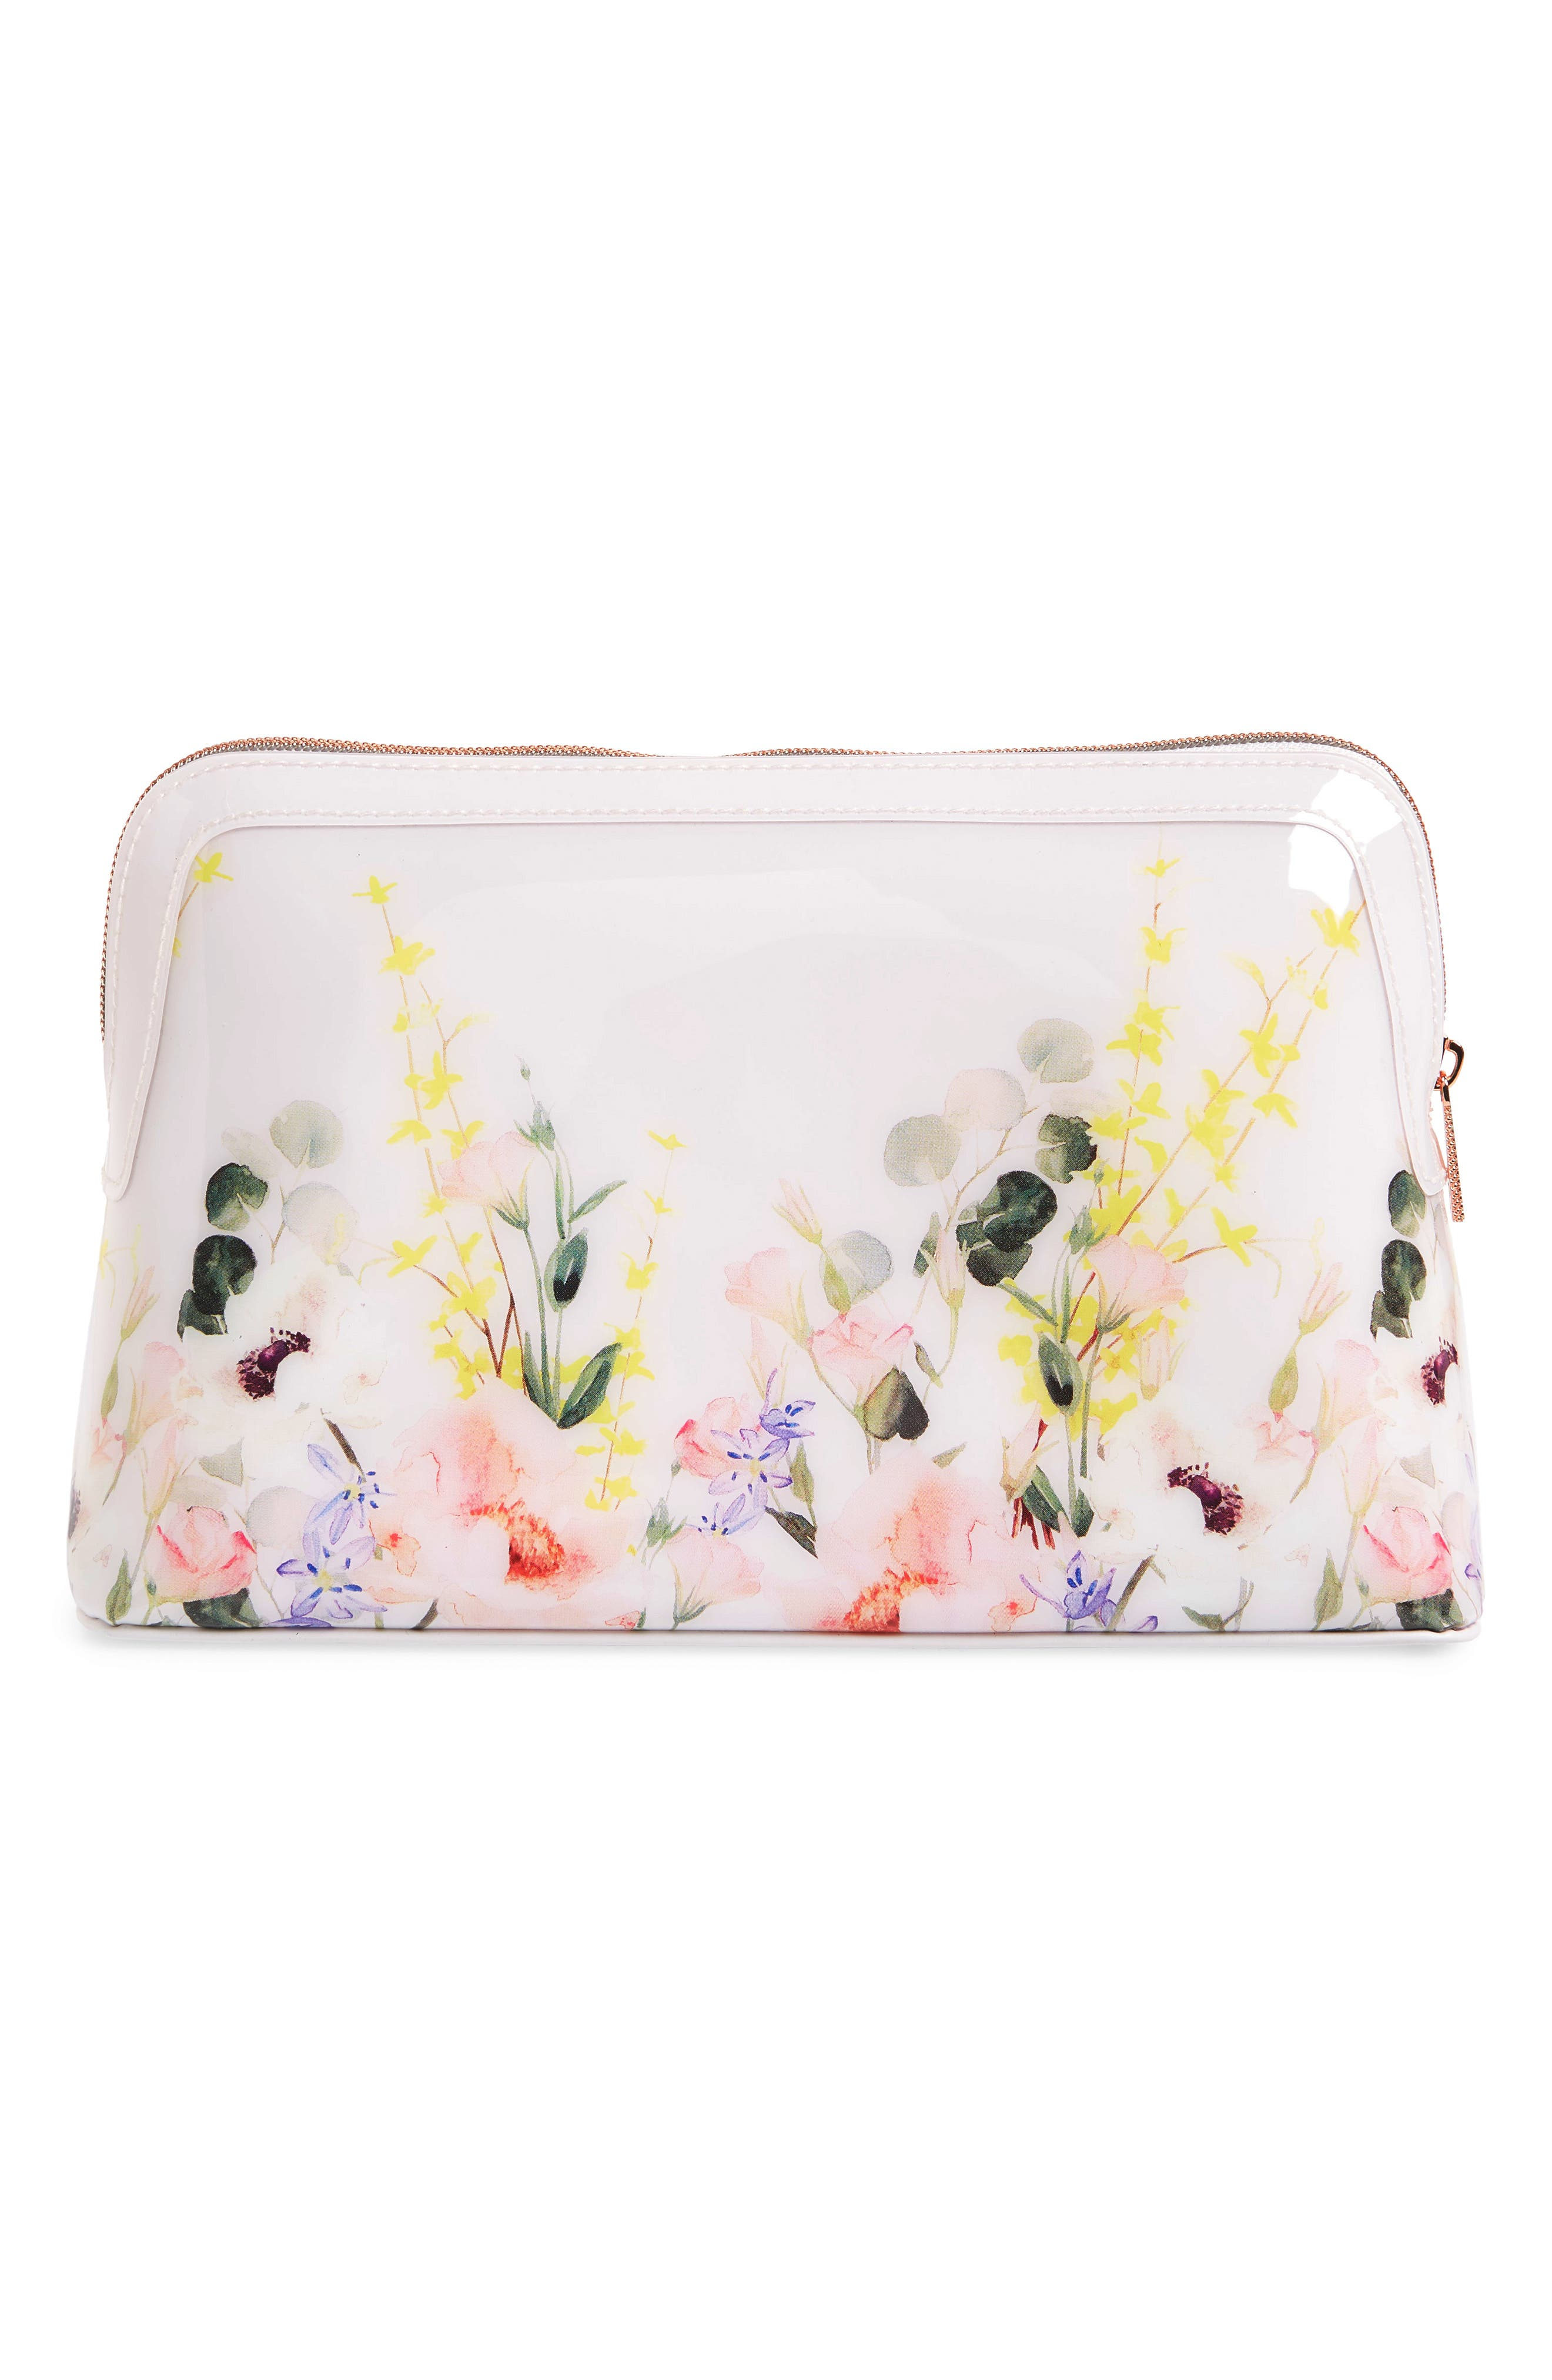 TED BAKER LONDON,                             Sybill Print Large Cosmetics Case,                             Alternate thumbnail 2, color,                             NUDE PINK